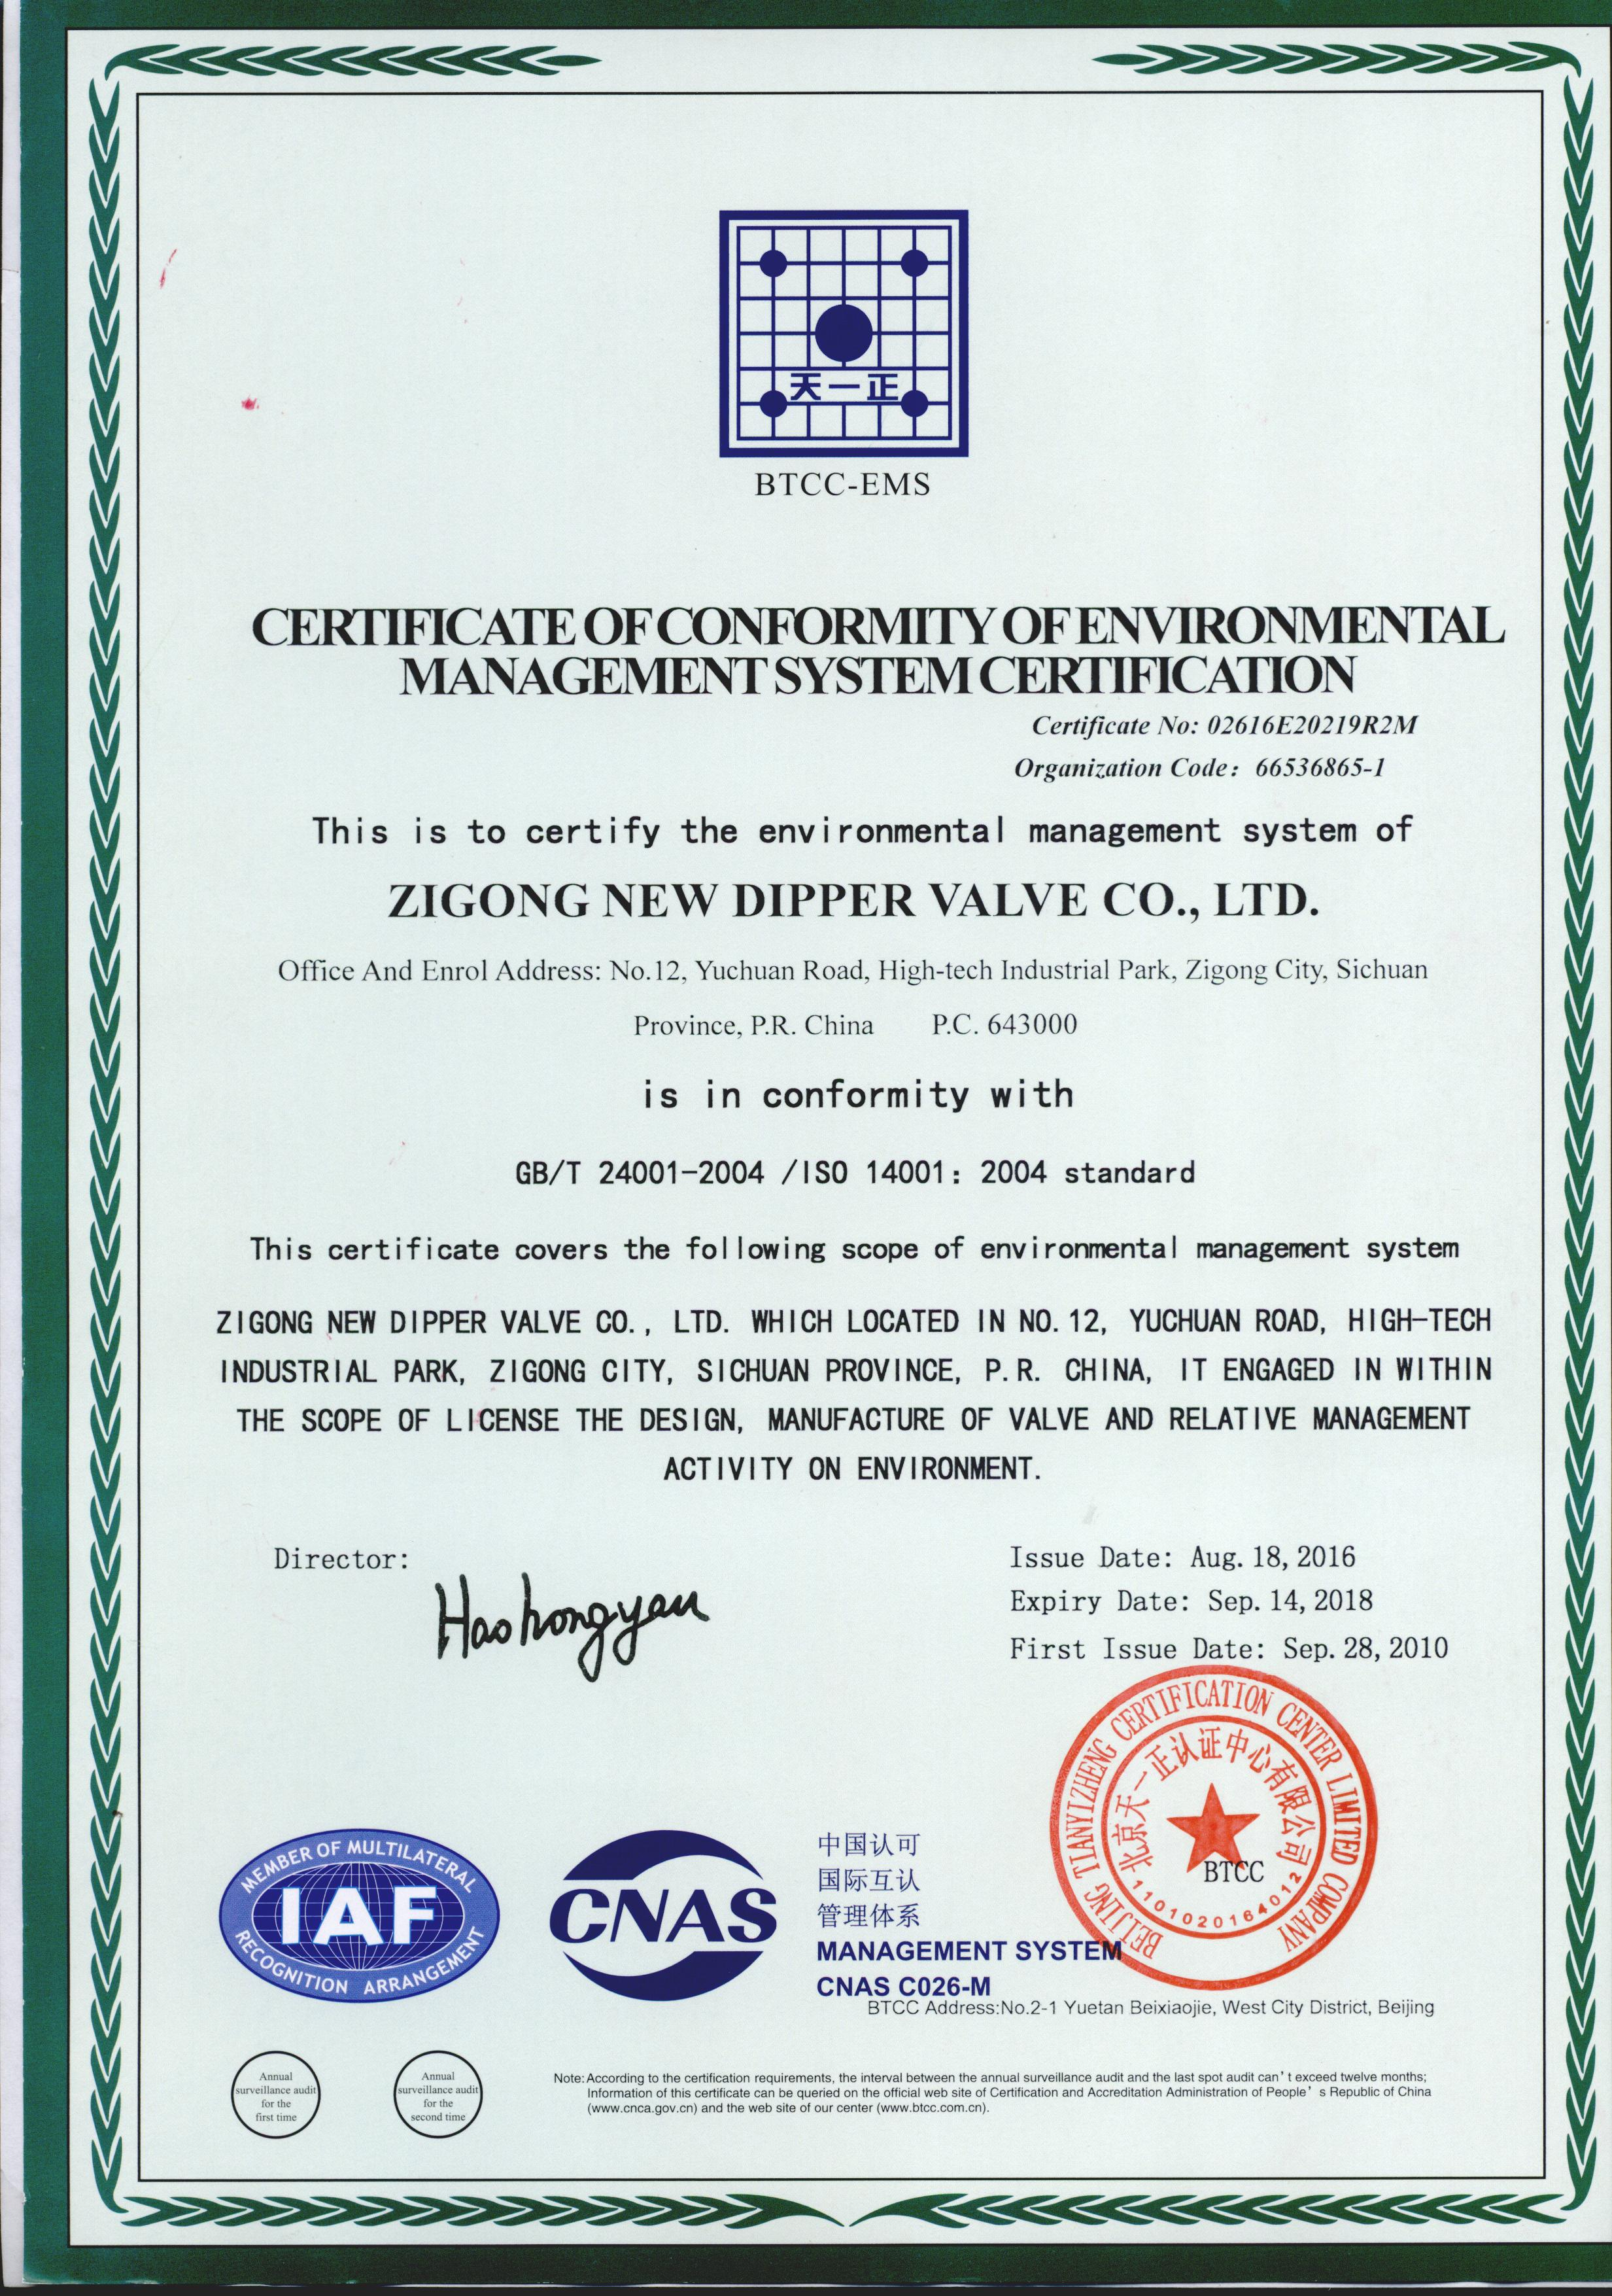 ISO 14001 Environment Management System Certificate